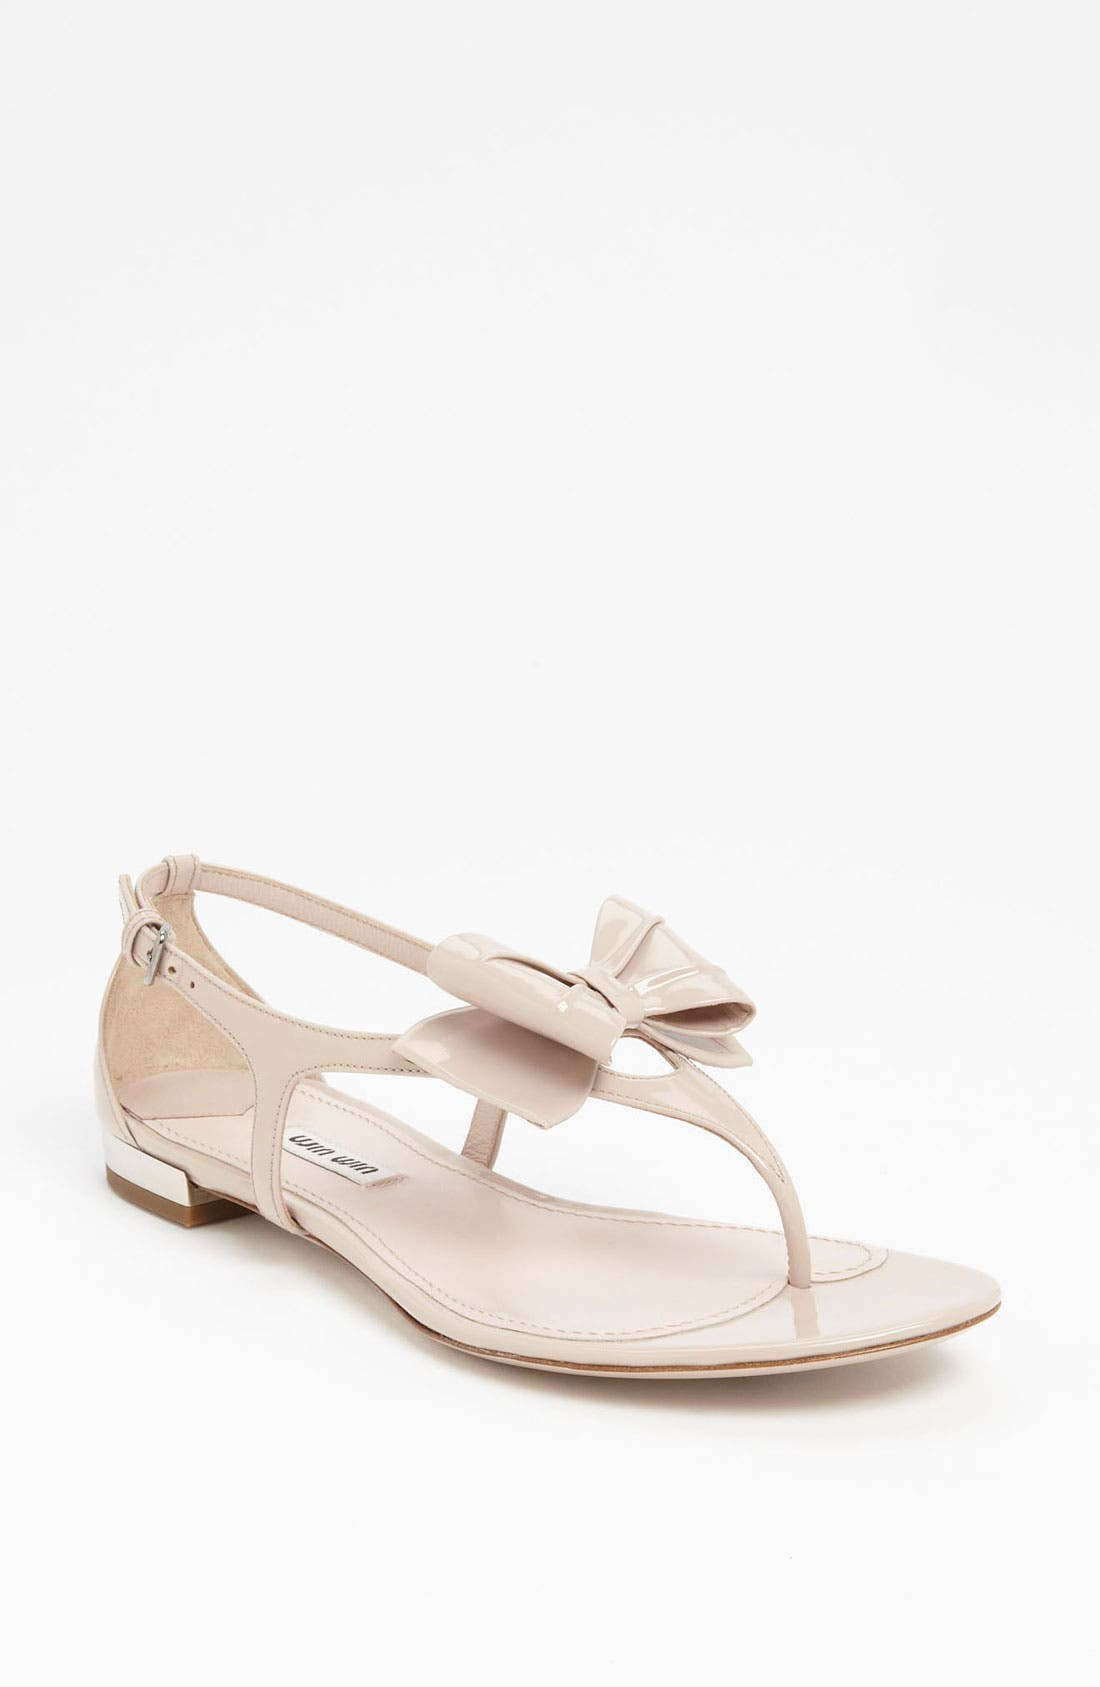 Alternate Image 1 Selected - Miu Miu T-Strap Bow Sandal